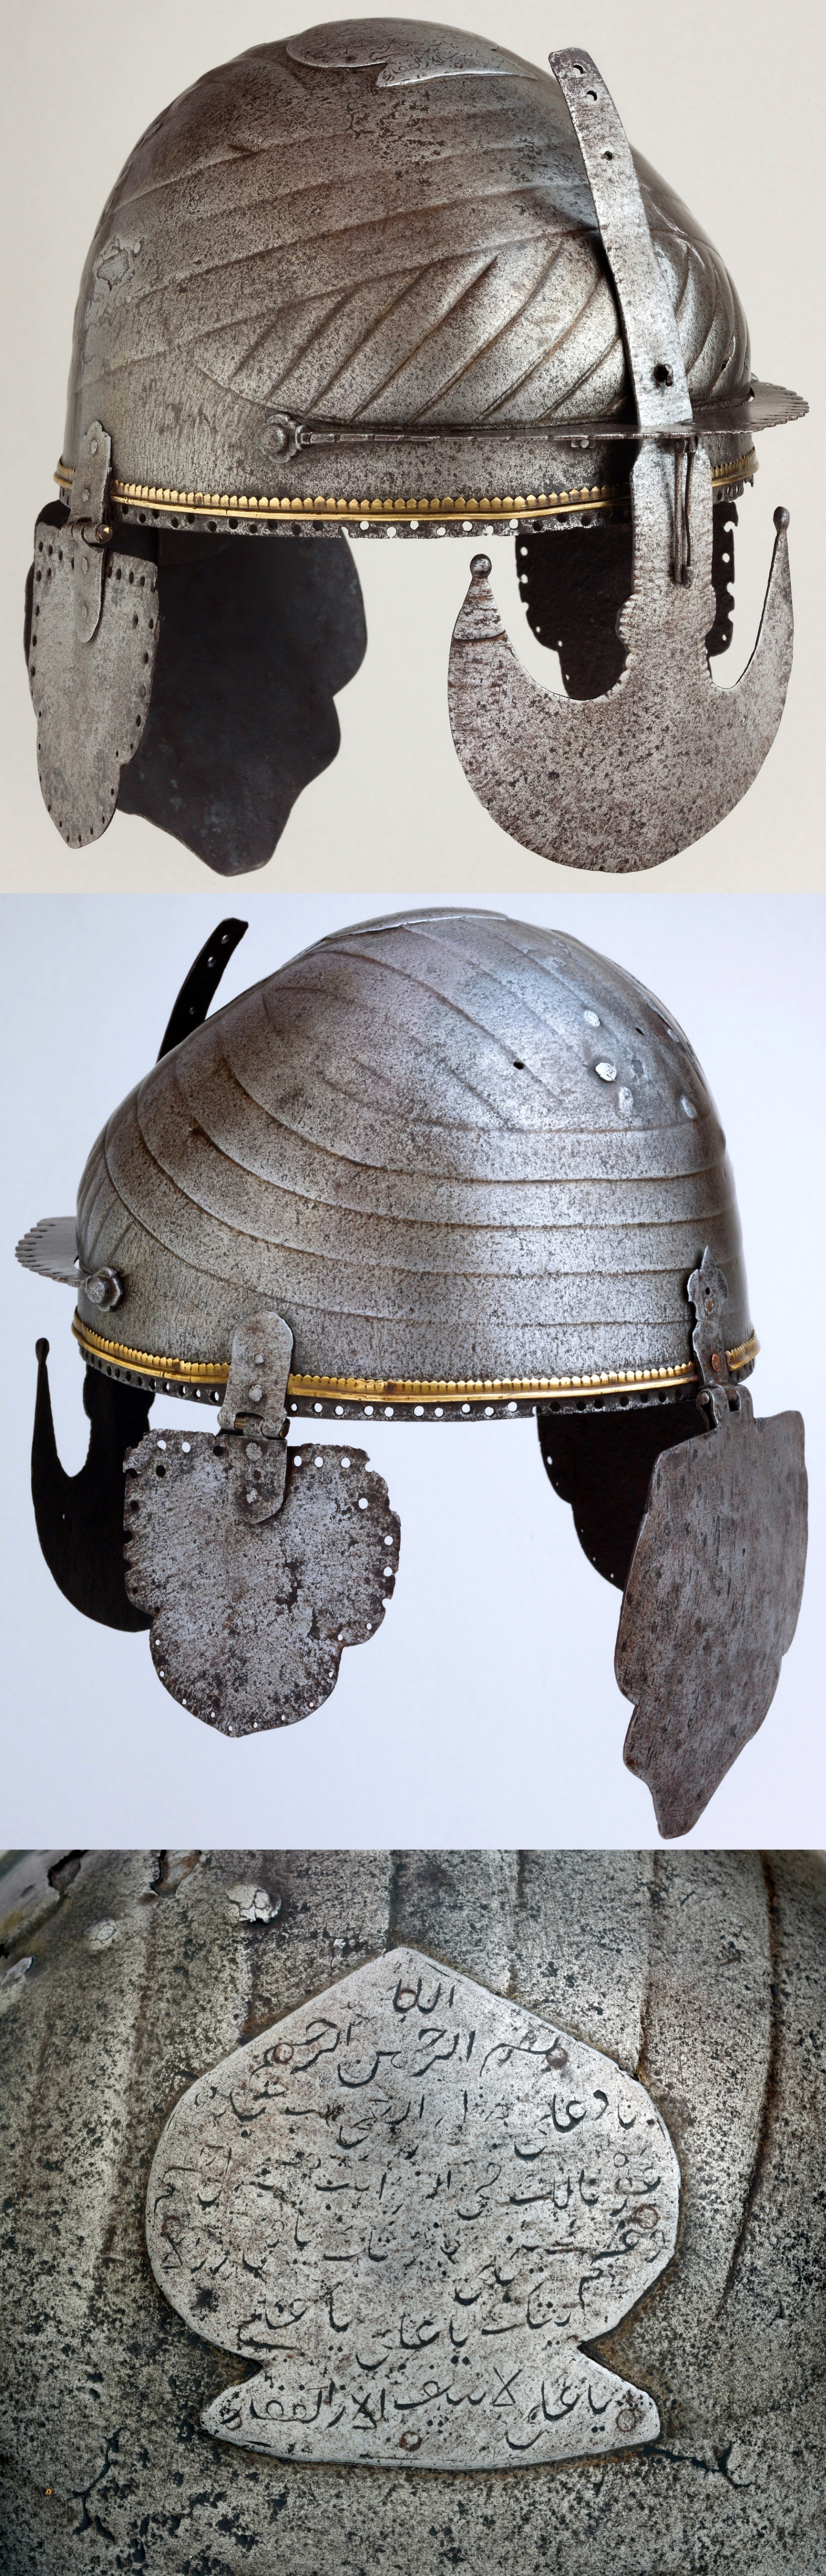 """Indian (Deccan, probably Bijapur) turban helmet, 17th century, steel, copper alloy, Bequest of George C. Stone, 1935, Metropolitan Museum of Art, New York. The helmet is shaped in the form of a cloth turban. A steel plaque riveted at the top is inscribed in Arabic: """"There is no hero like Ali and no sword like dhu'l-faqar."""" This refers to the son-in-law and cousin of the Prophet Muhammad and to the Prophet's sword, which he gave to Ali."""